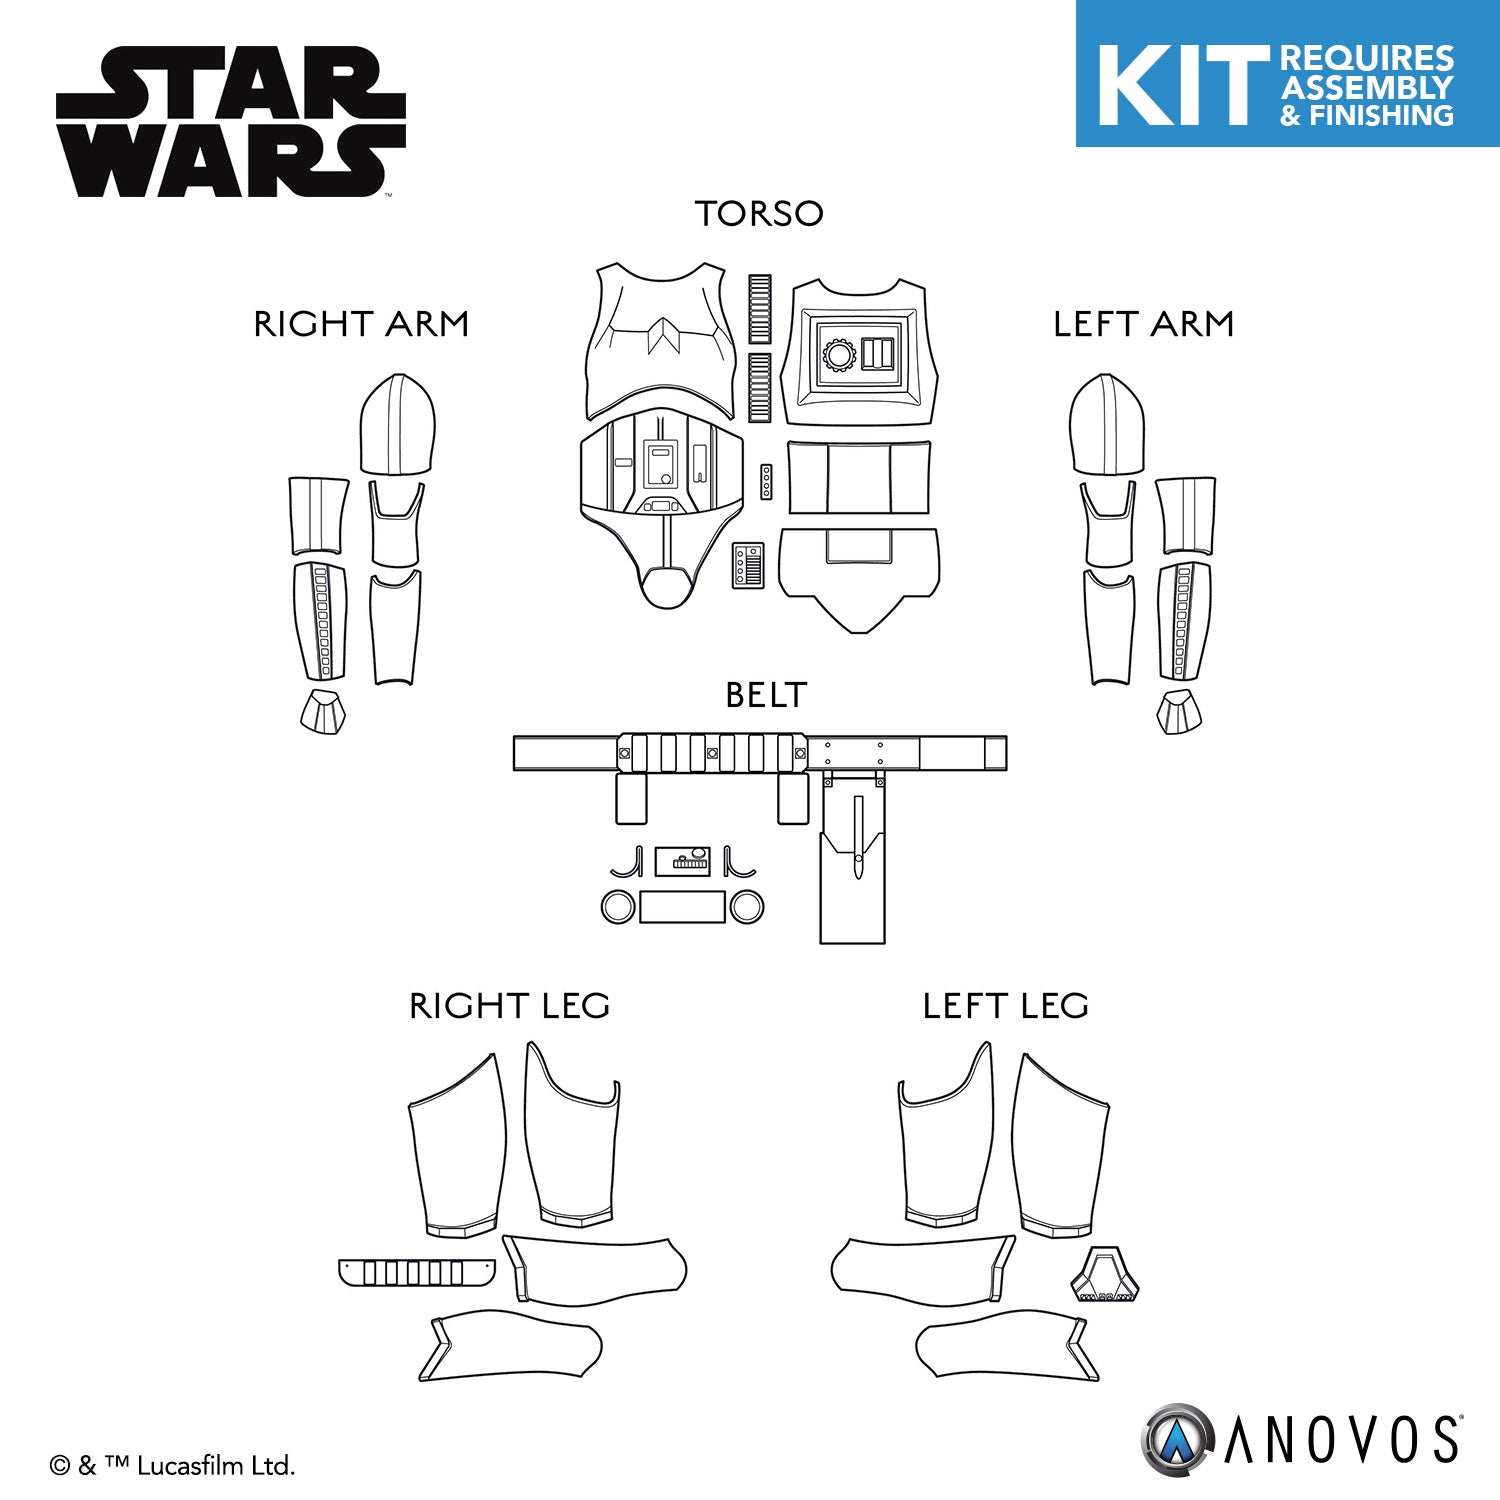 Star Wars Imperial Stormtrooper Armor Kit Replacement Parts Anovos Productions Llc